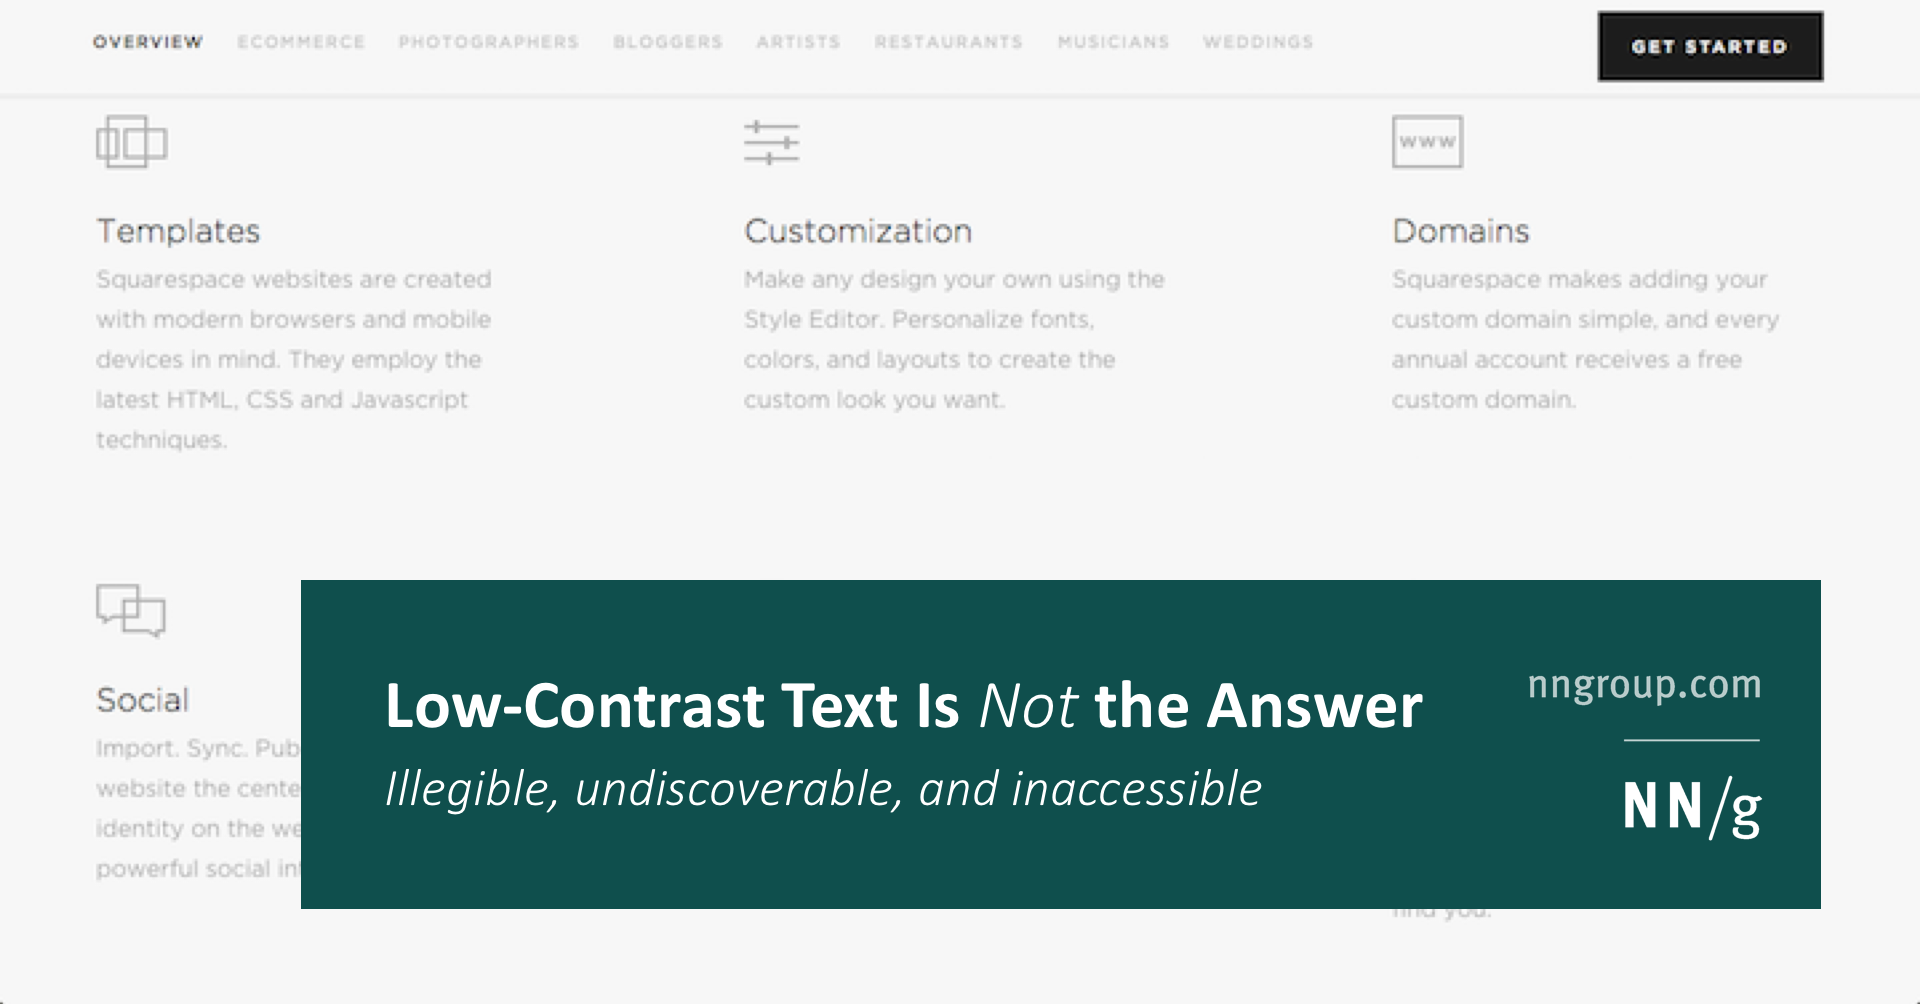 Low-Contrast Text Is Not the Answer